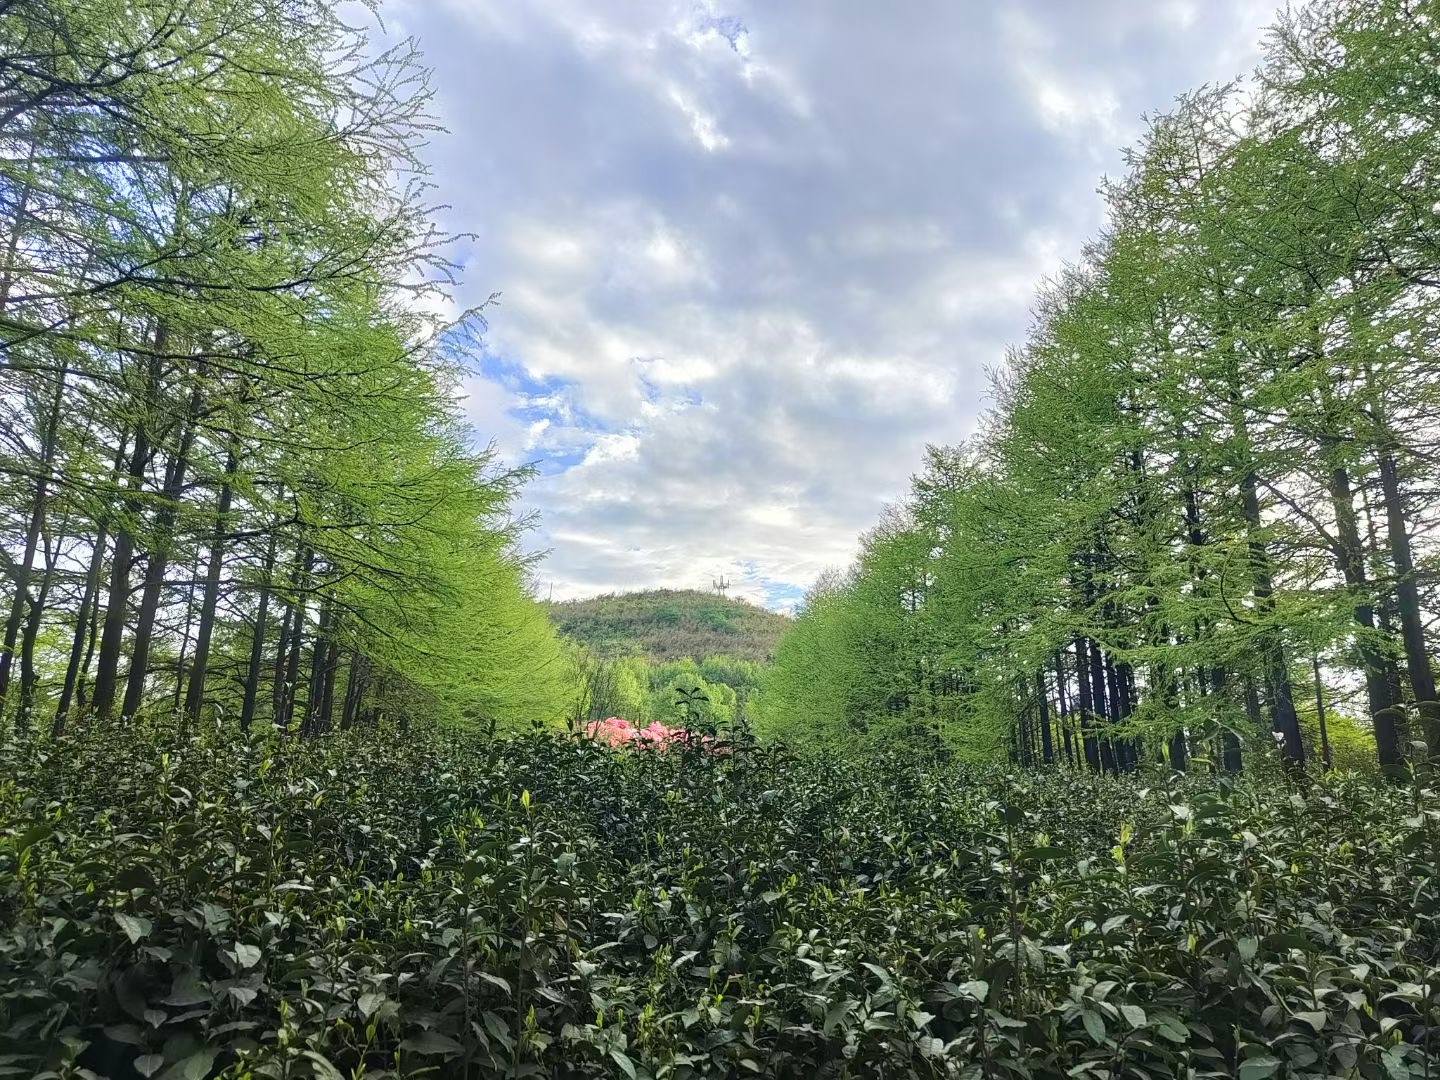 A small garden full of low tea bushes is framed by rows of tall trees, with the near peak of the mountain rising in the background.